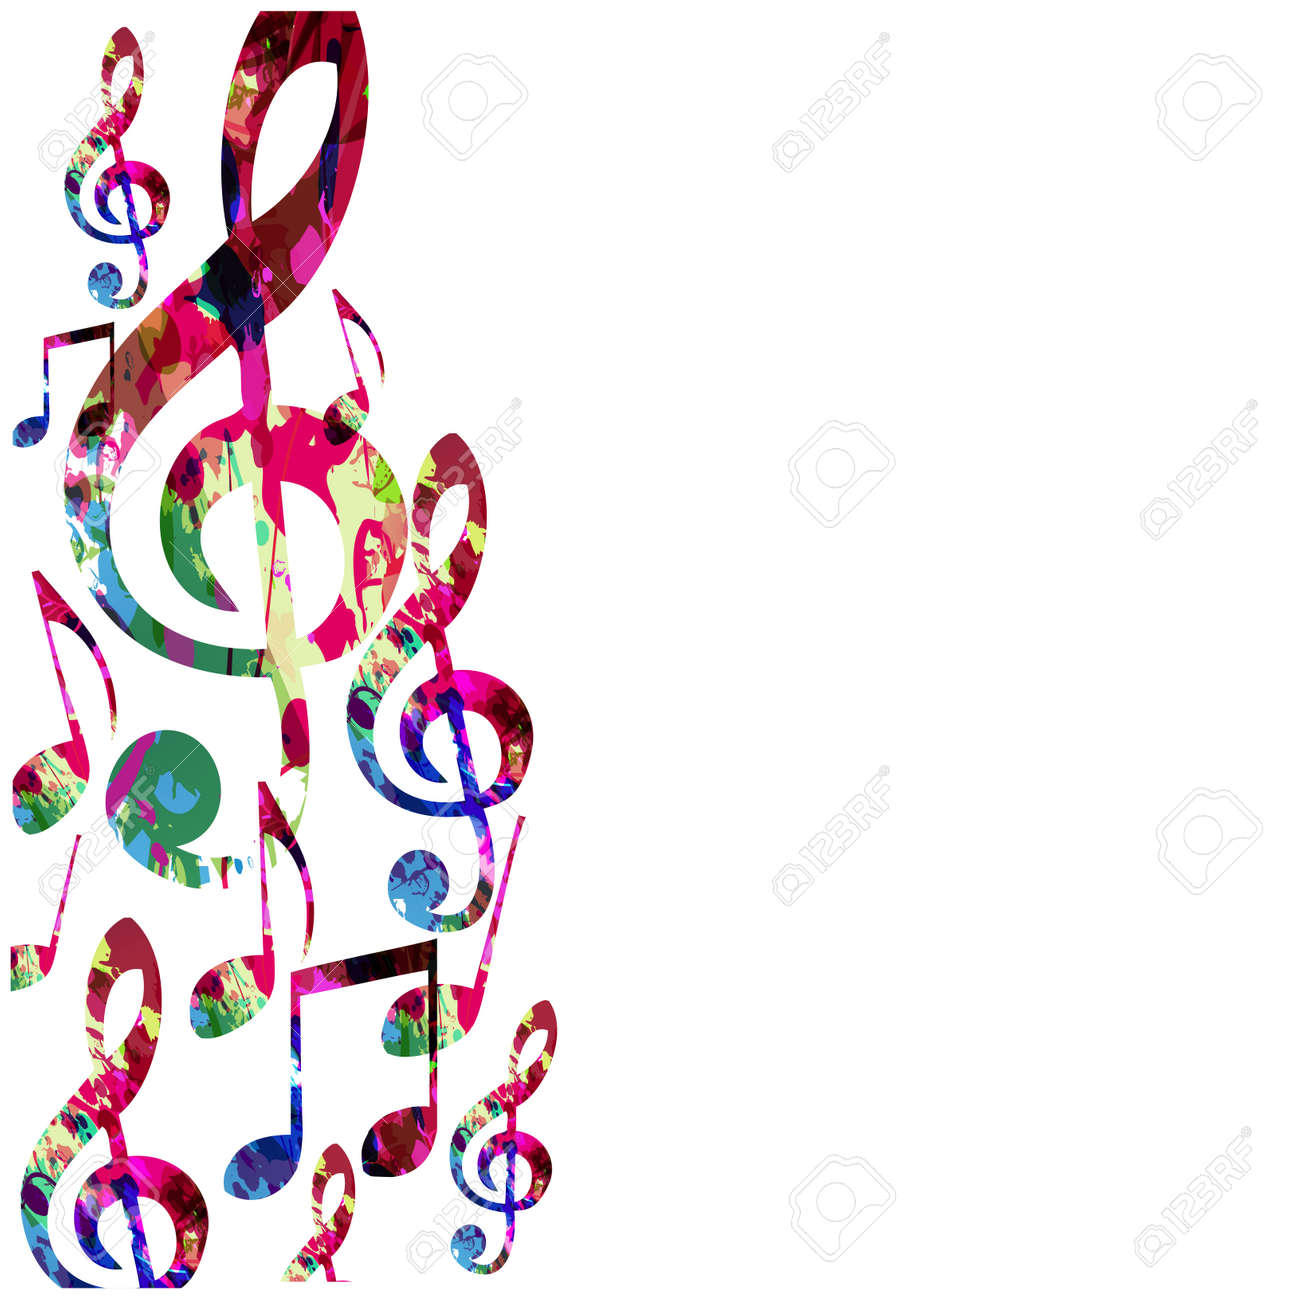 Colorful Music Notes Isolated Vector Illustration Music Background